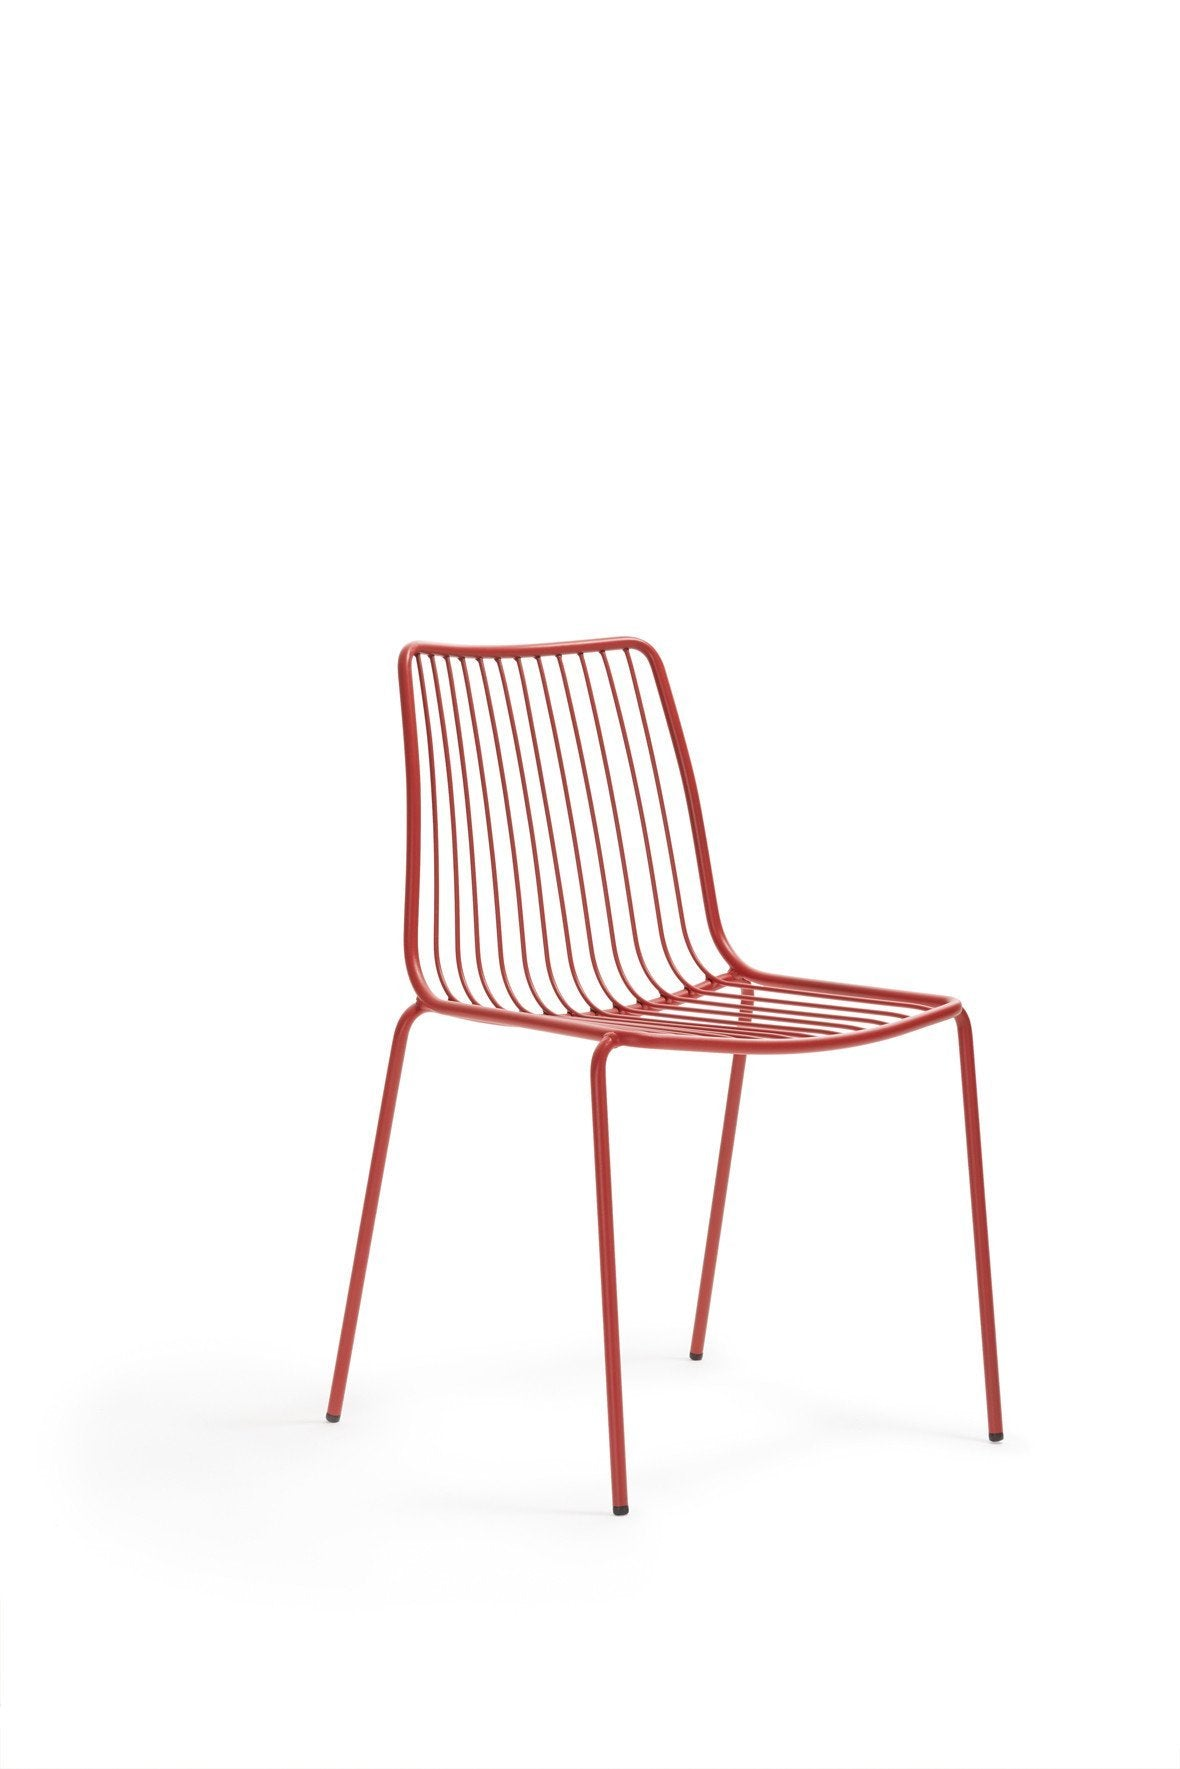 Nolita 3651 High Back Side Chair-Pedrali-Contract Furniture Store